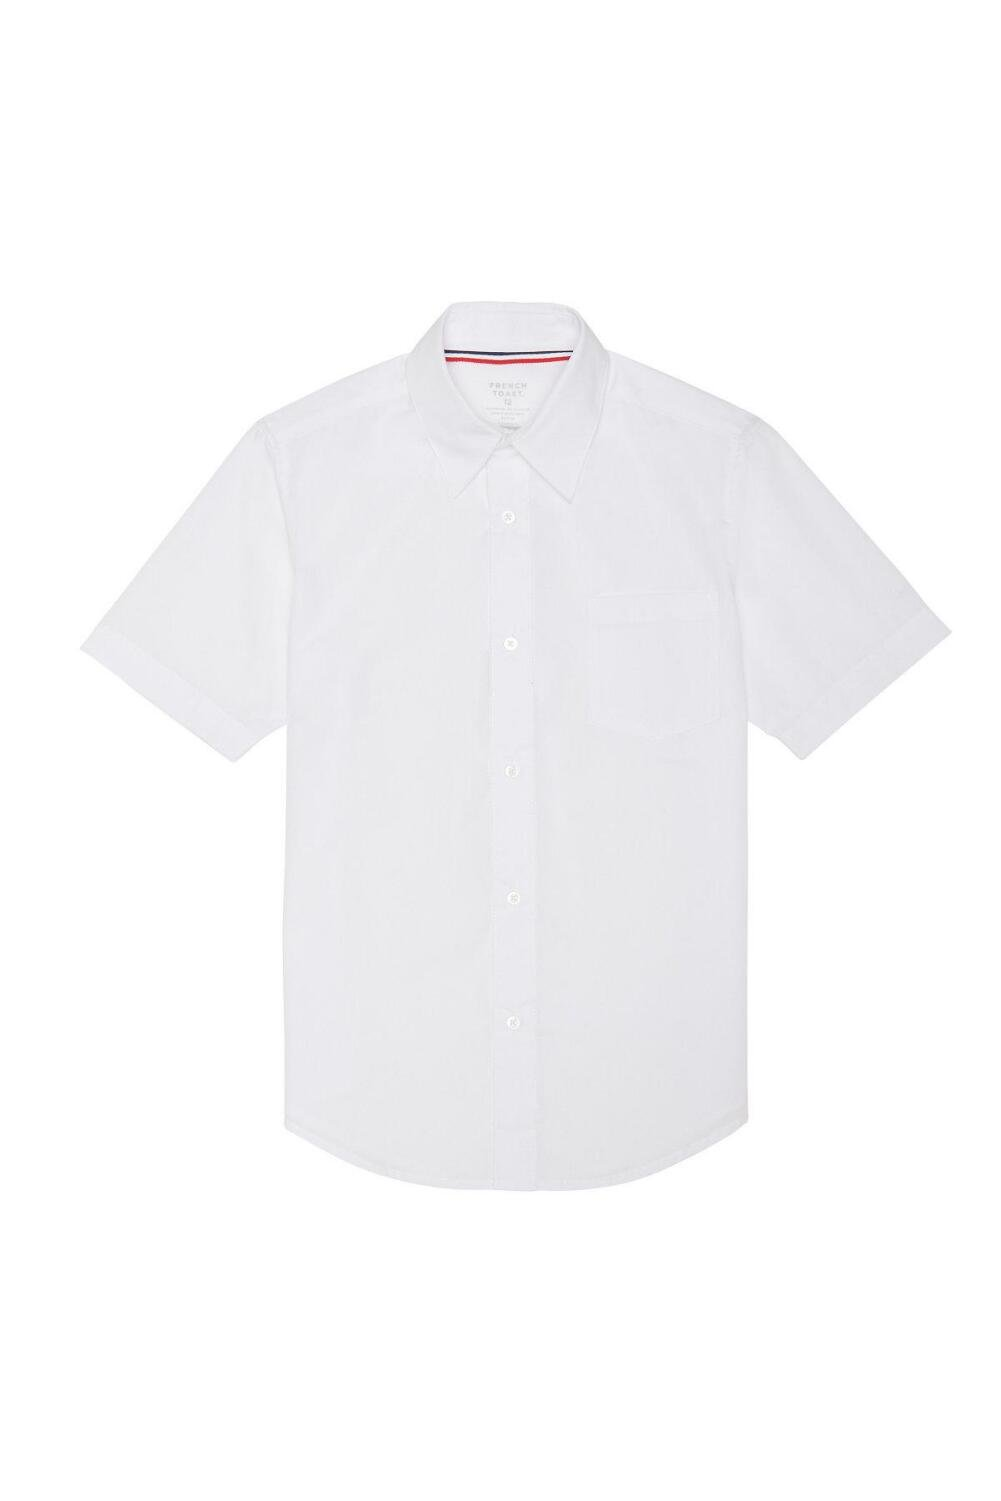 French Toast Big Boys' Short Sleeve Poplin Dress Shirt, White, 8